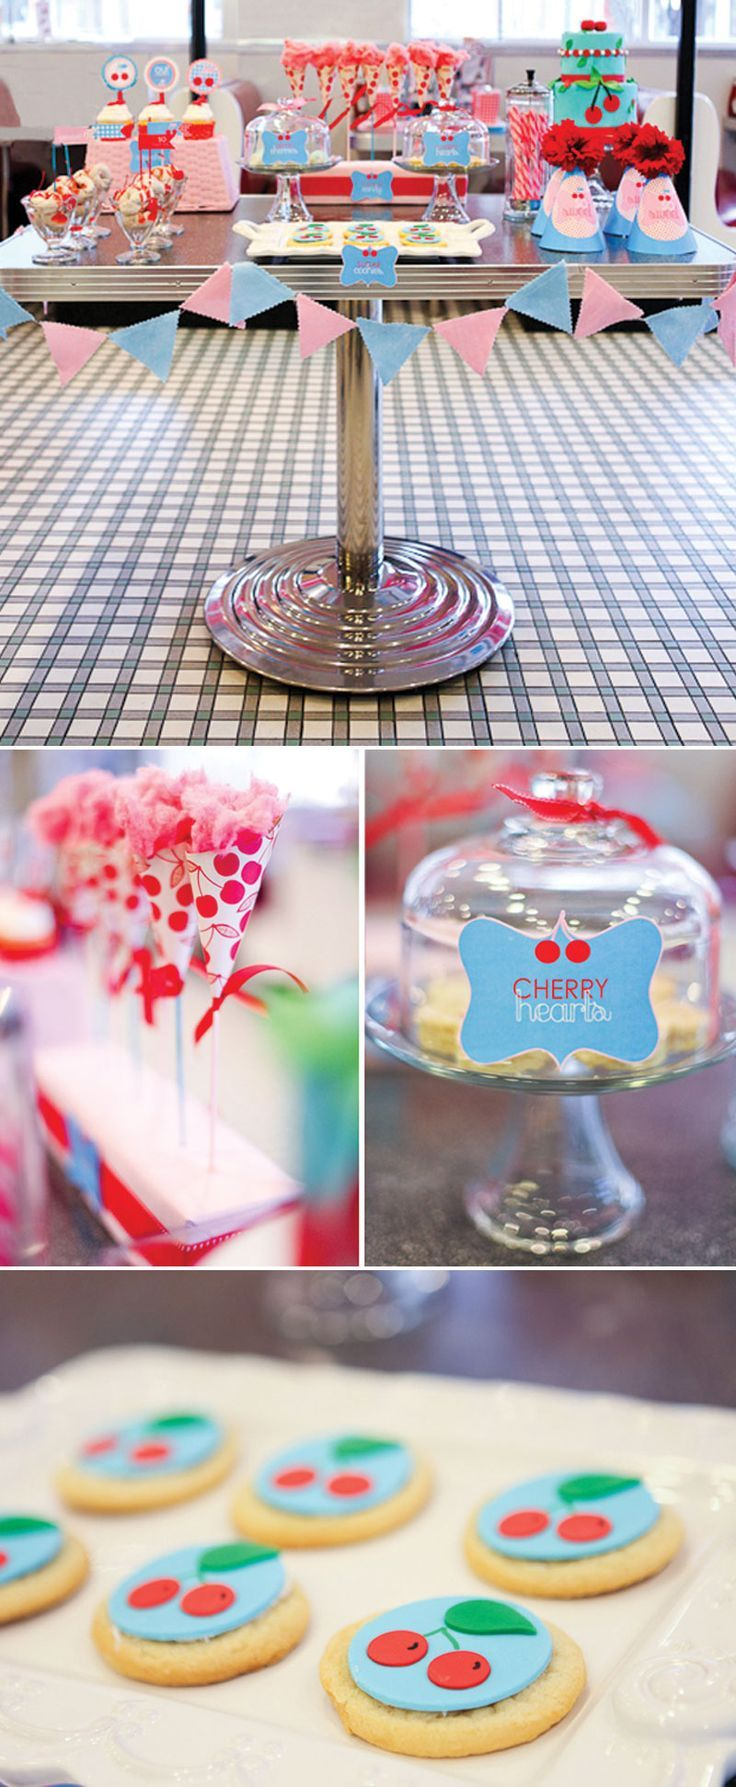 Throw a perfect Cherry Party at your local diner for a fun retro twist!  This Retro Cherry Party should by Lindi Haws should give you lots of fun  ideas!